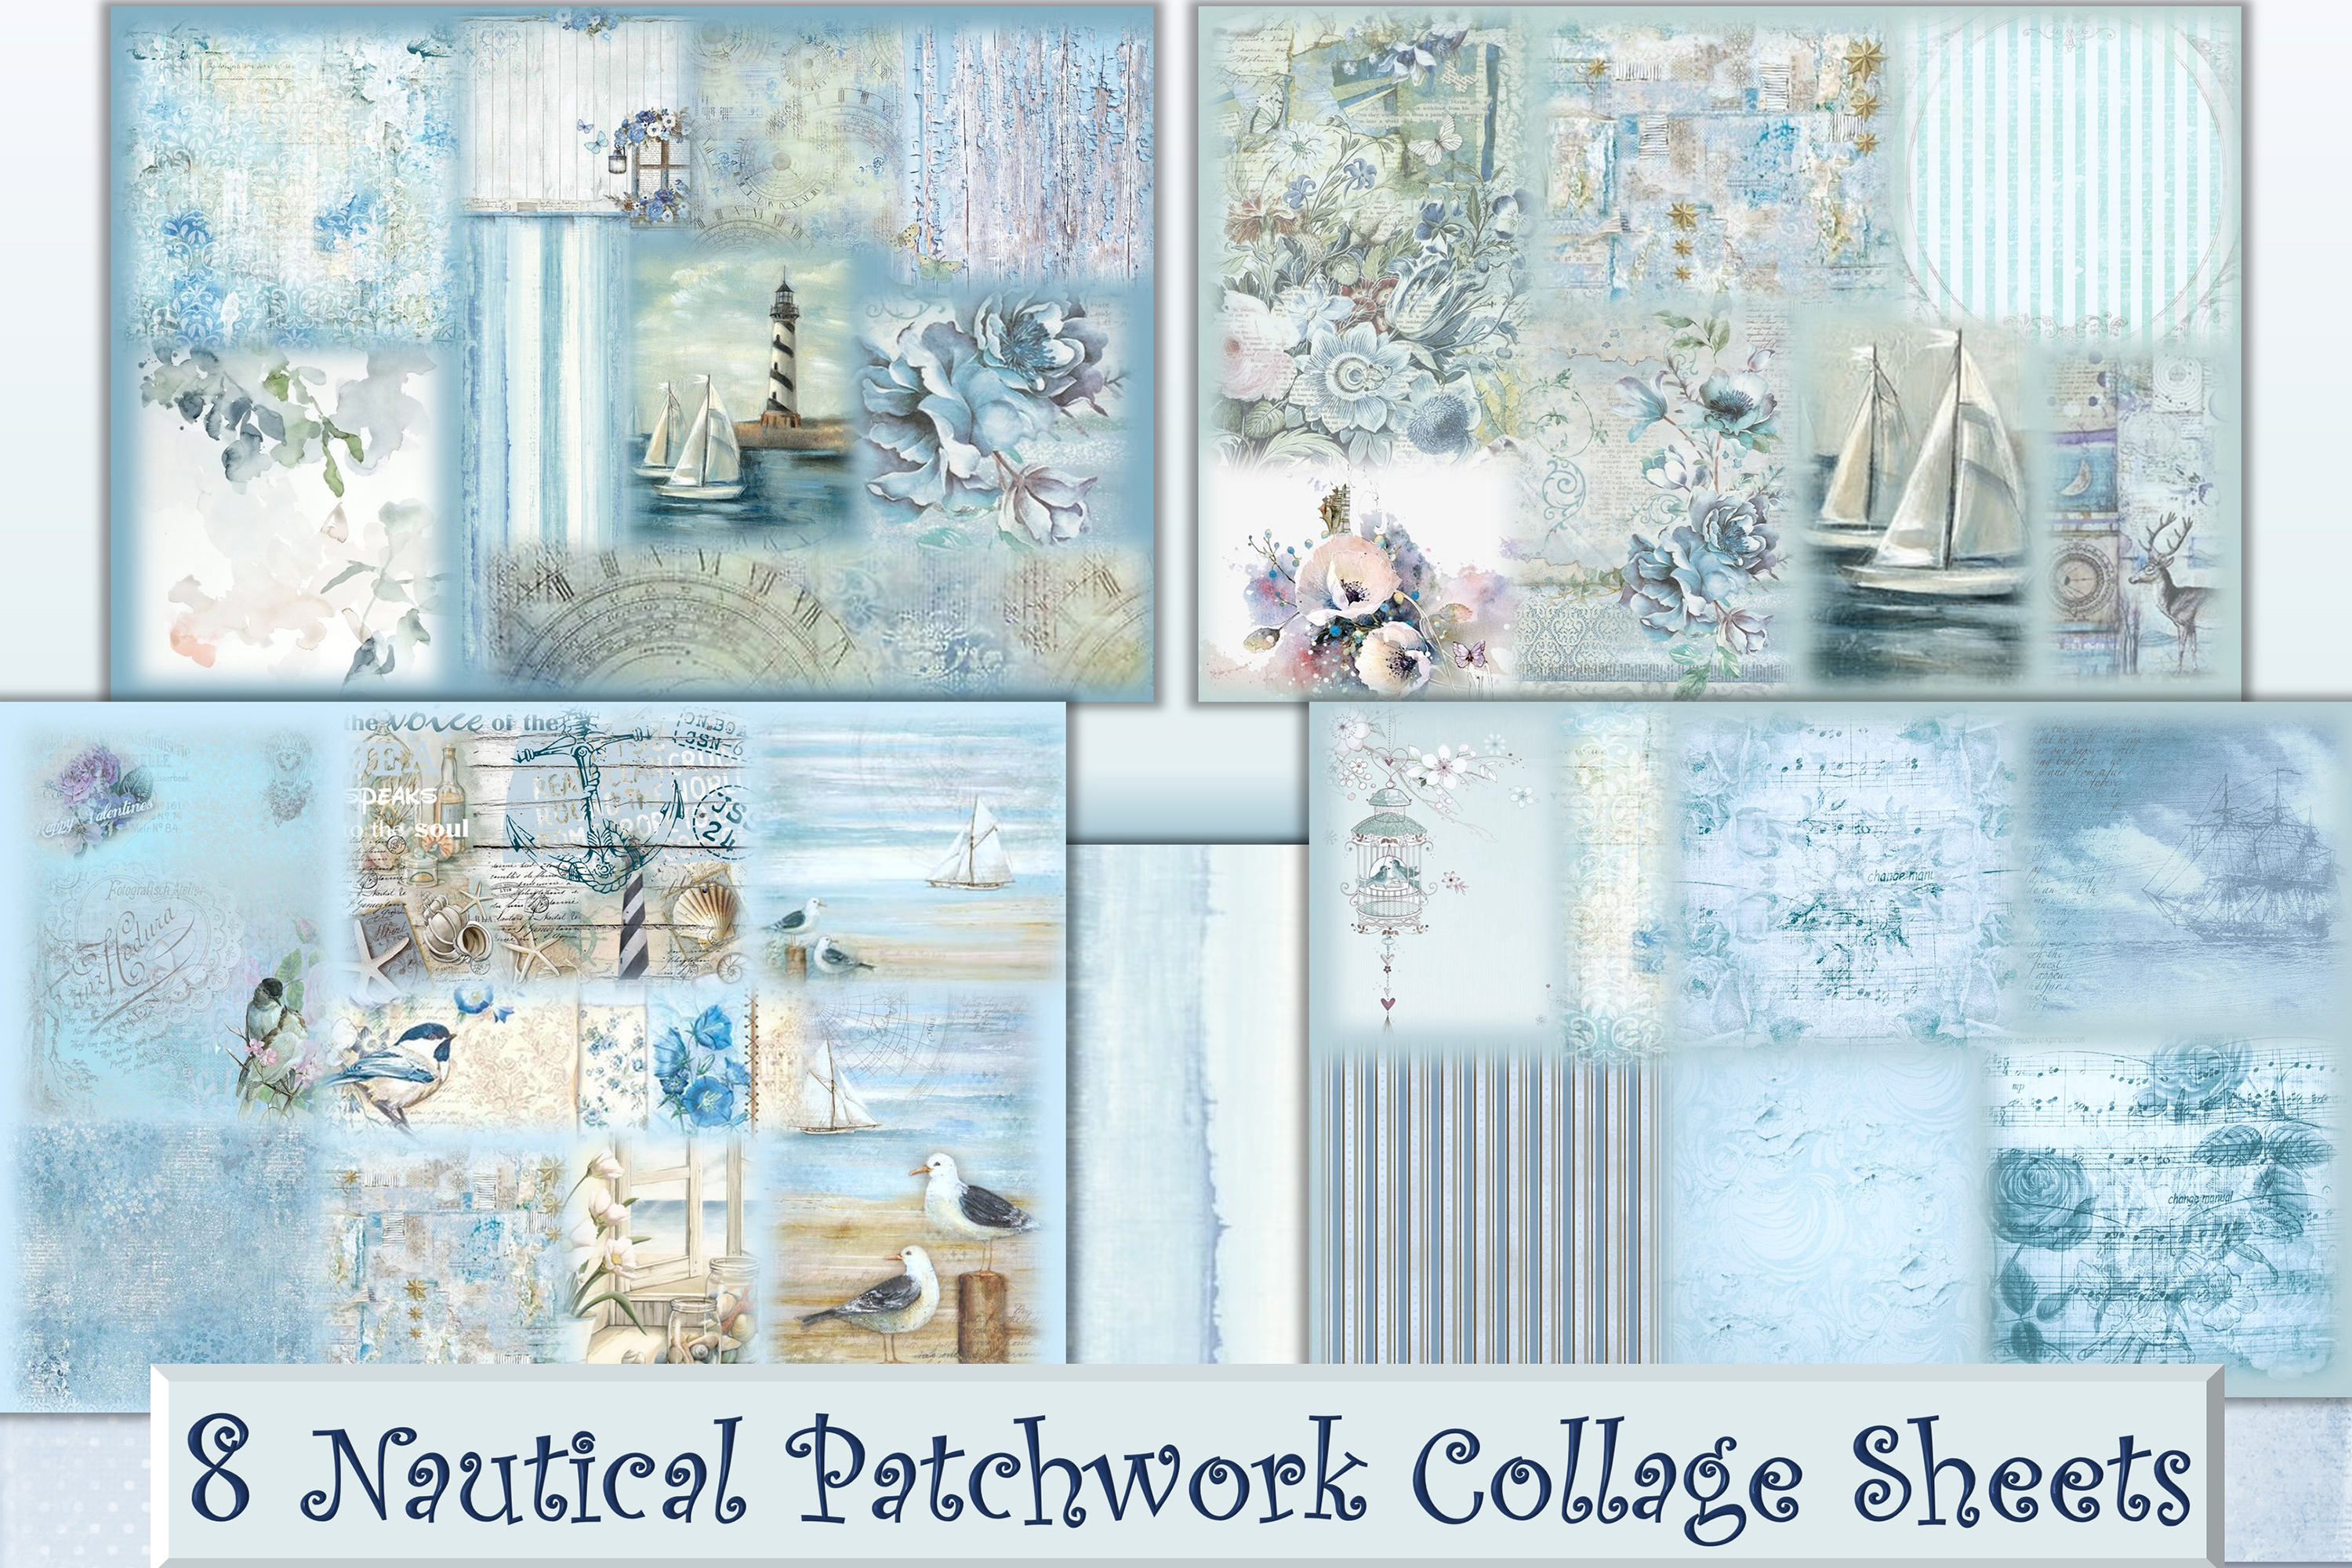 8 Nautical Collage Sheets 8.5 x 11 inches. JPEG and PDF example image 1